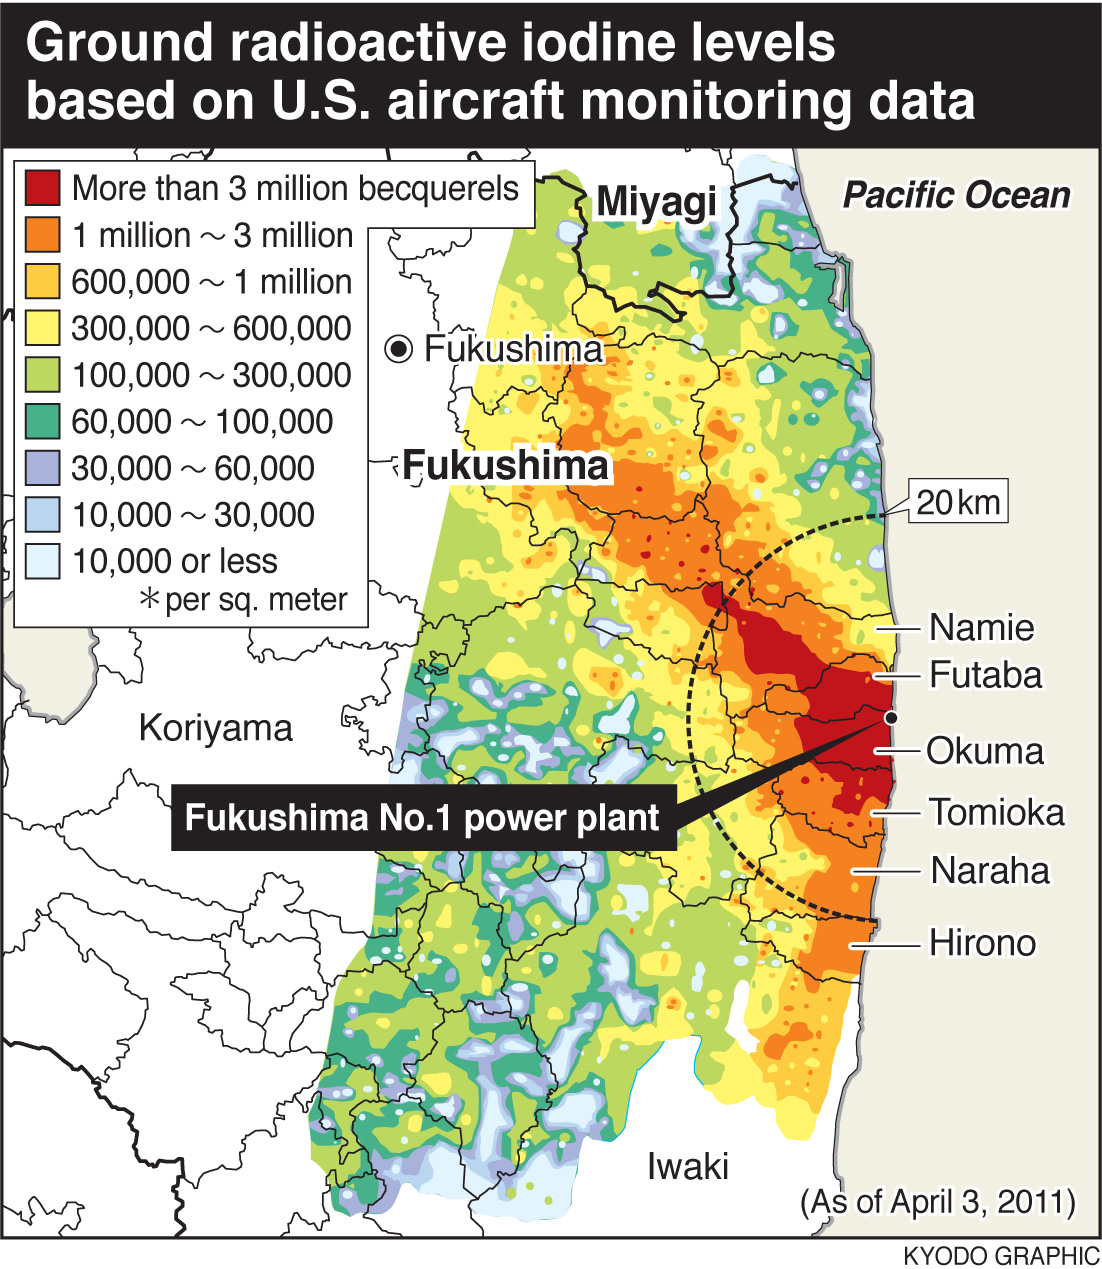 New Map Of Radioactive Iodine Released From Fukushima Daiichi - Us nuclear plant meltdown map